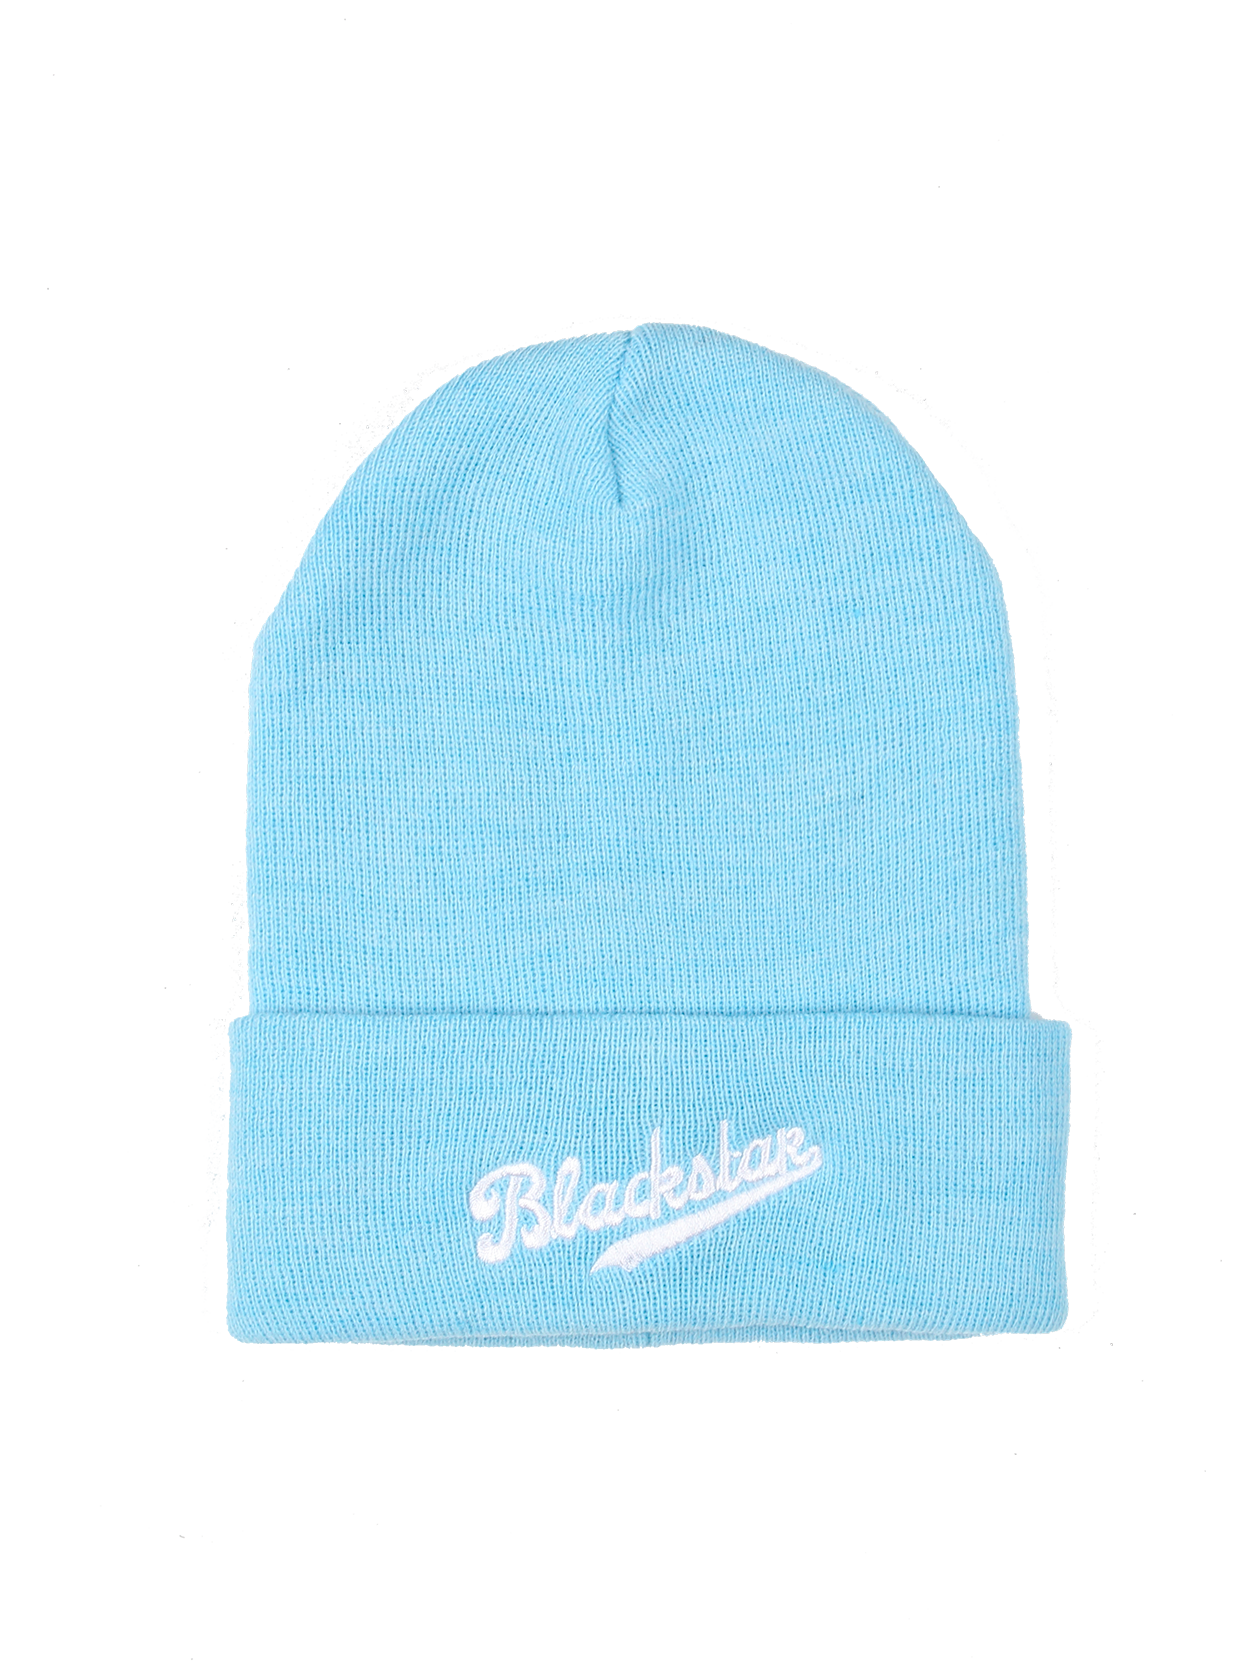 Unisex beanie ChampionUnisex beanie in by Black Star Wear. Turn-up brim with Blackstar embroidery. 100% acrylic. One size. Perfect for winter. Avaliable in black, burgundy, blue and light-blue.<br><br>size: One size<br>color: Light Blue<br>gender: unisex